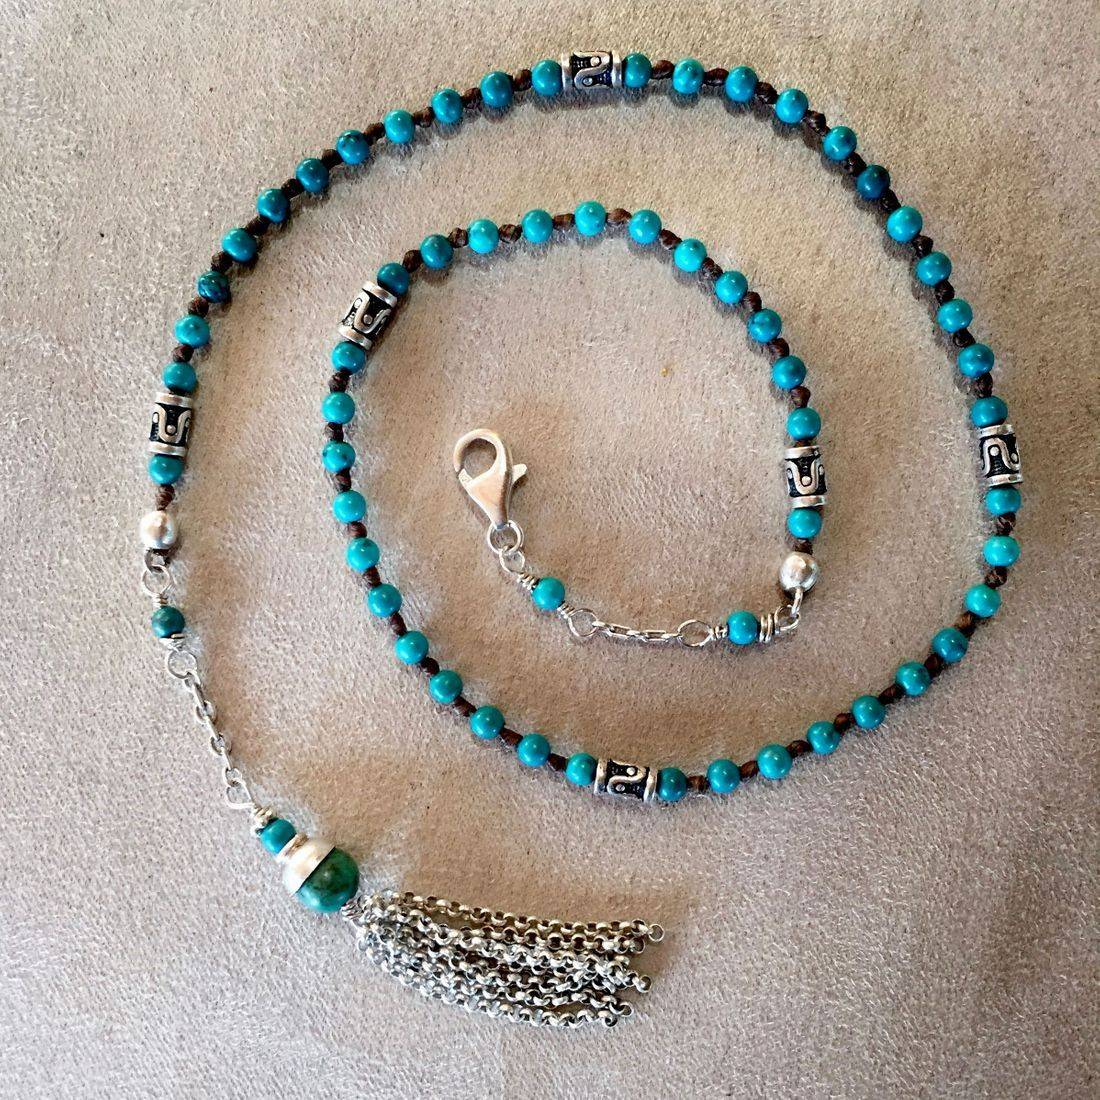 """17.5"""" turquoise  Gemstone Wrap Bracelet with Sterling Silver channel beads, Chain clasp and Tassel"""